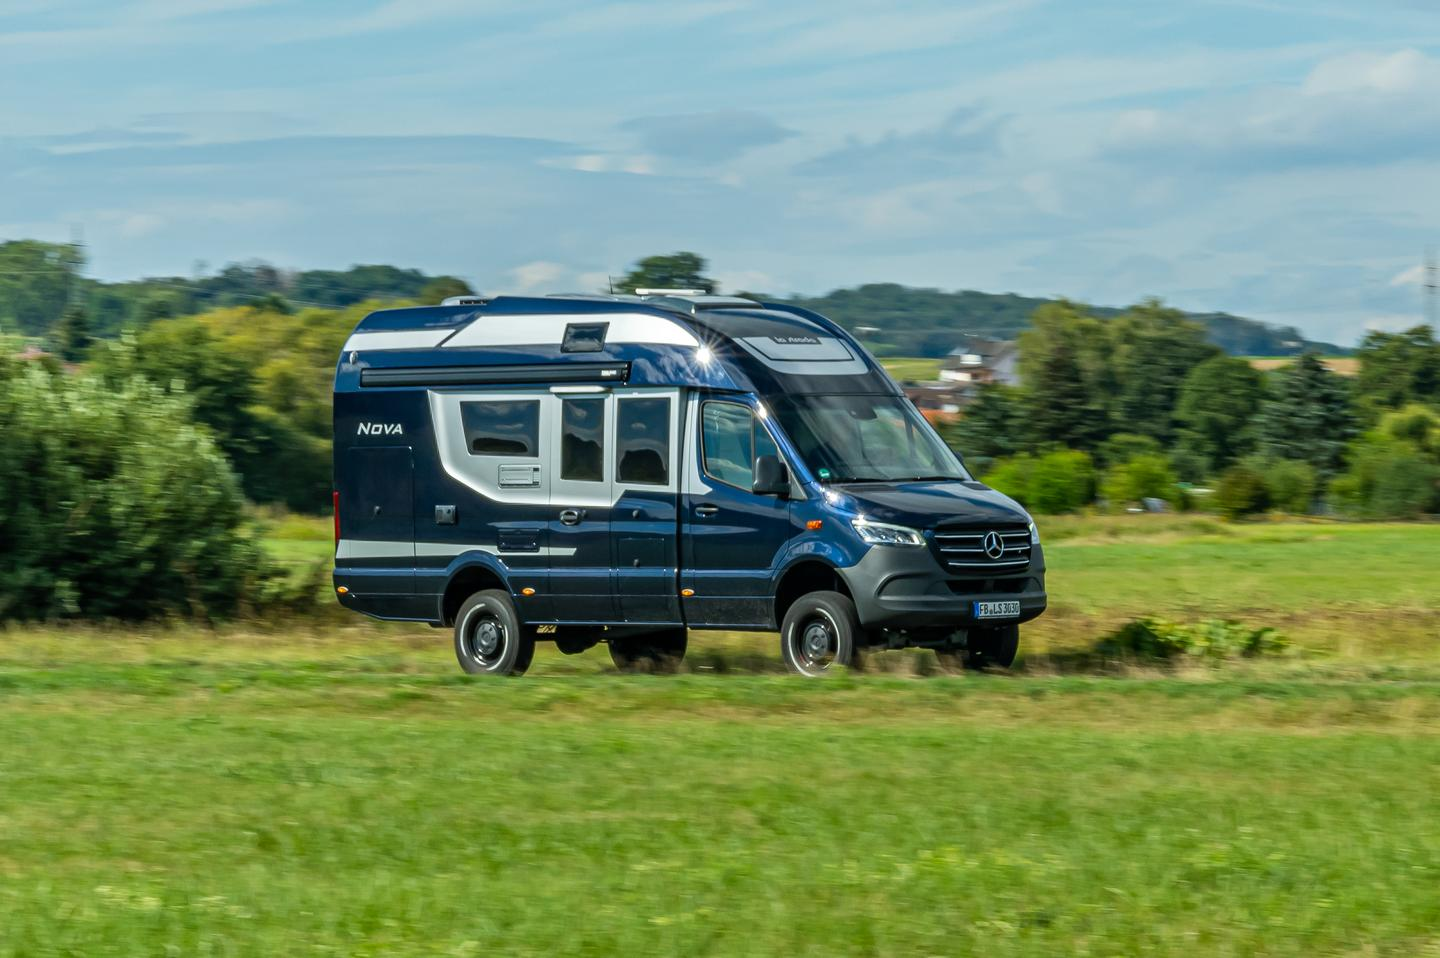 La Strada debuts the Nova M at the 2020 Caravan Salon